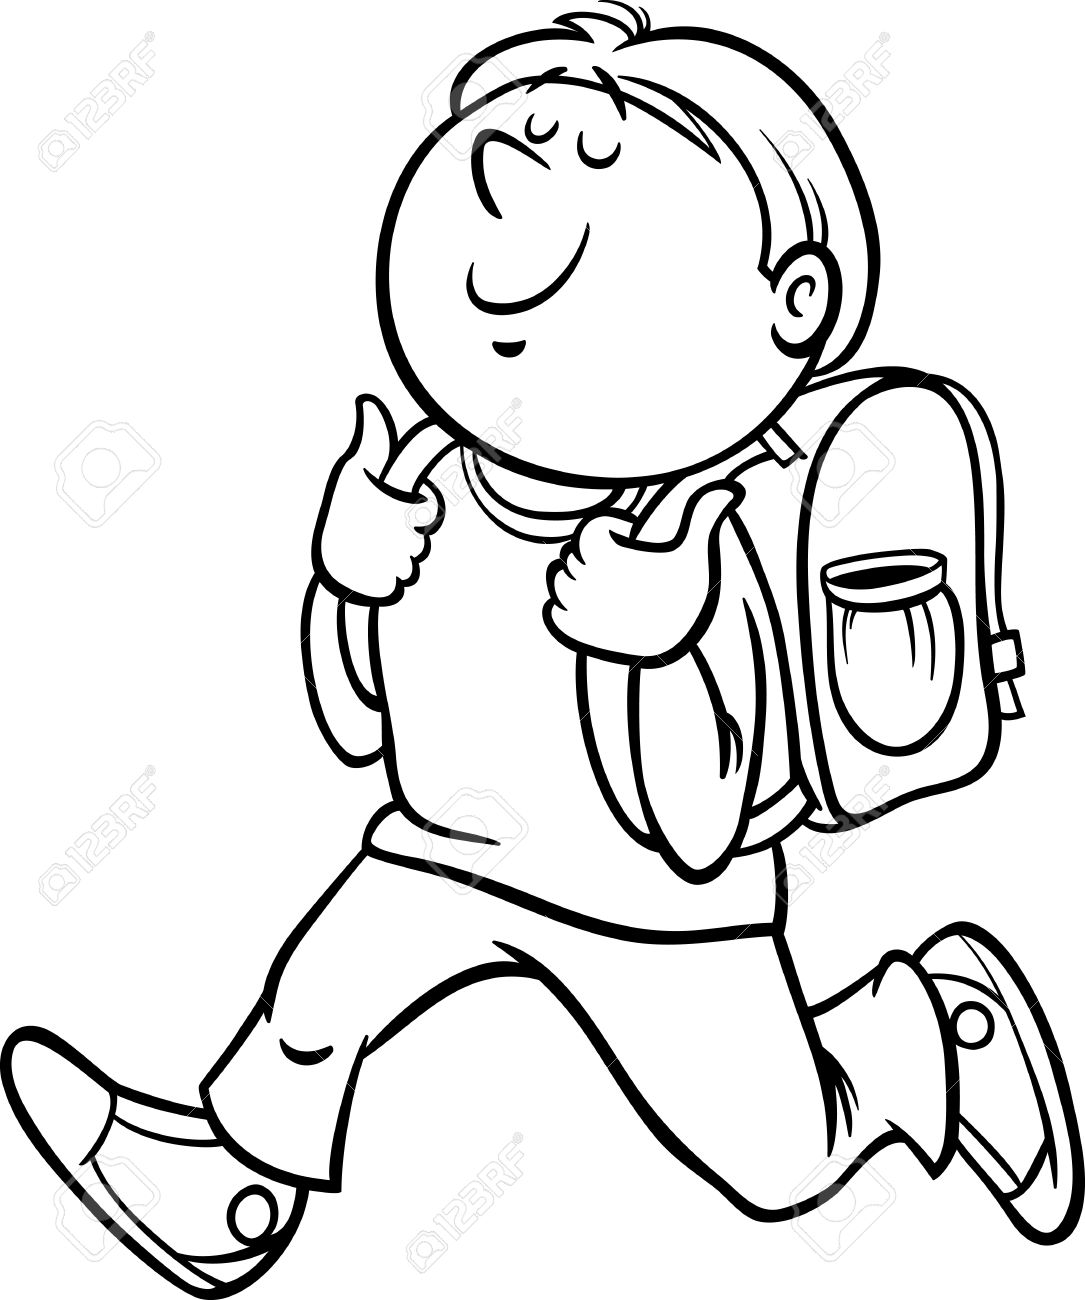 Boy at school clipart balck and white clip art black and white library School Boy Drawing | Free download best School Boy Drawing on ... clip art black and white library